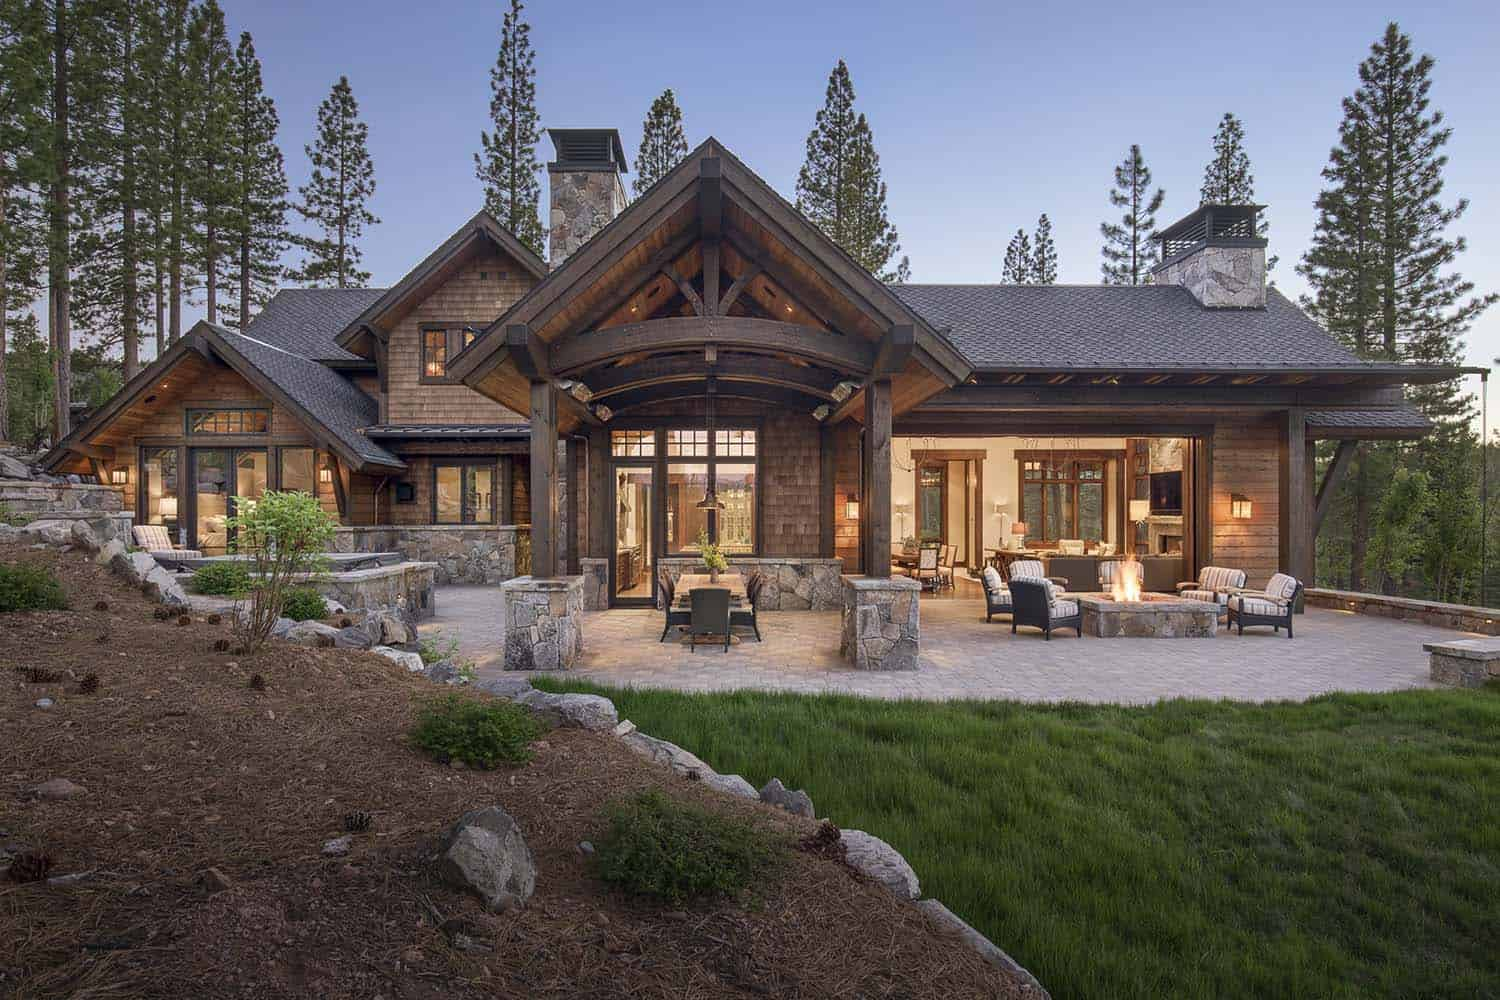 Rustic Mountain Retreat-Kelly Stone Architects-01-1 Kindesign